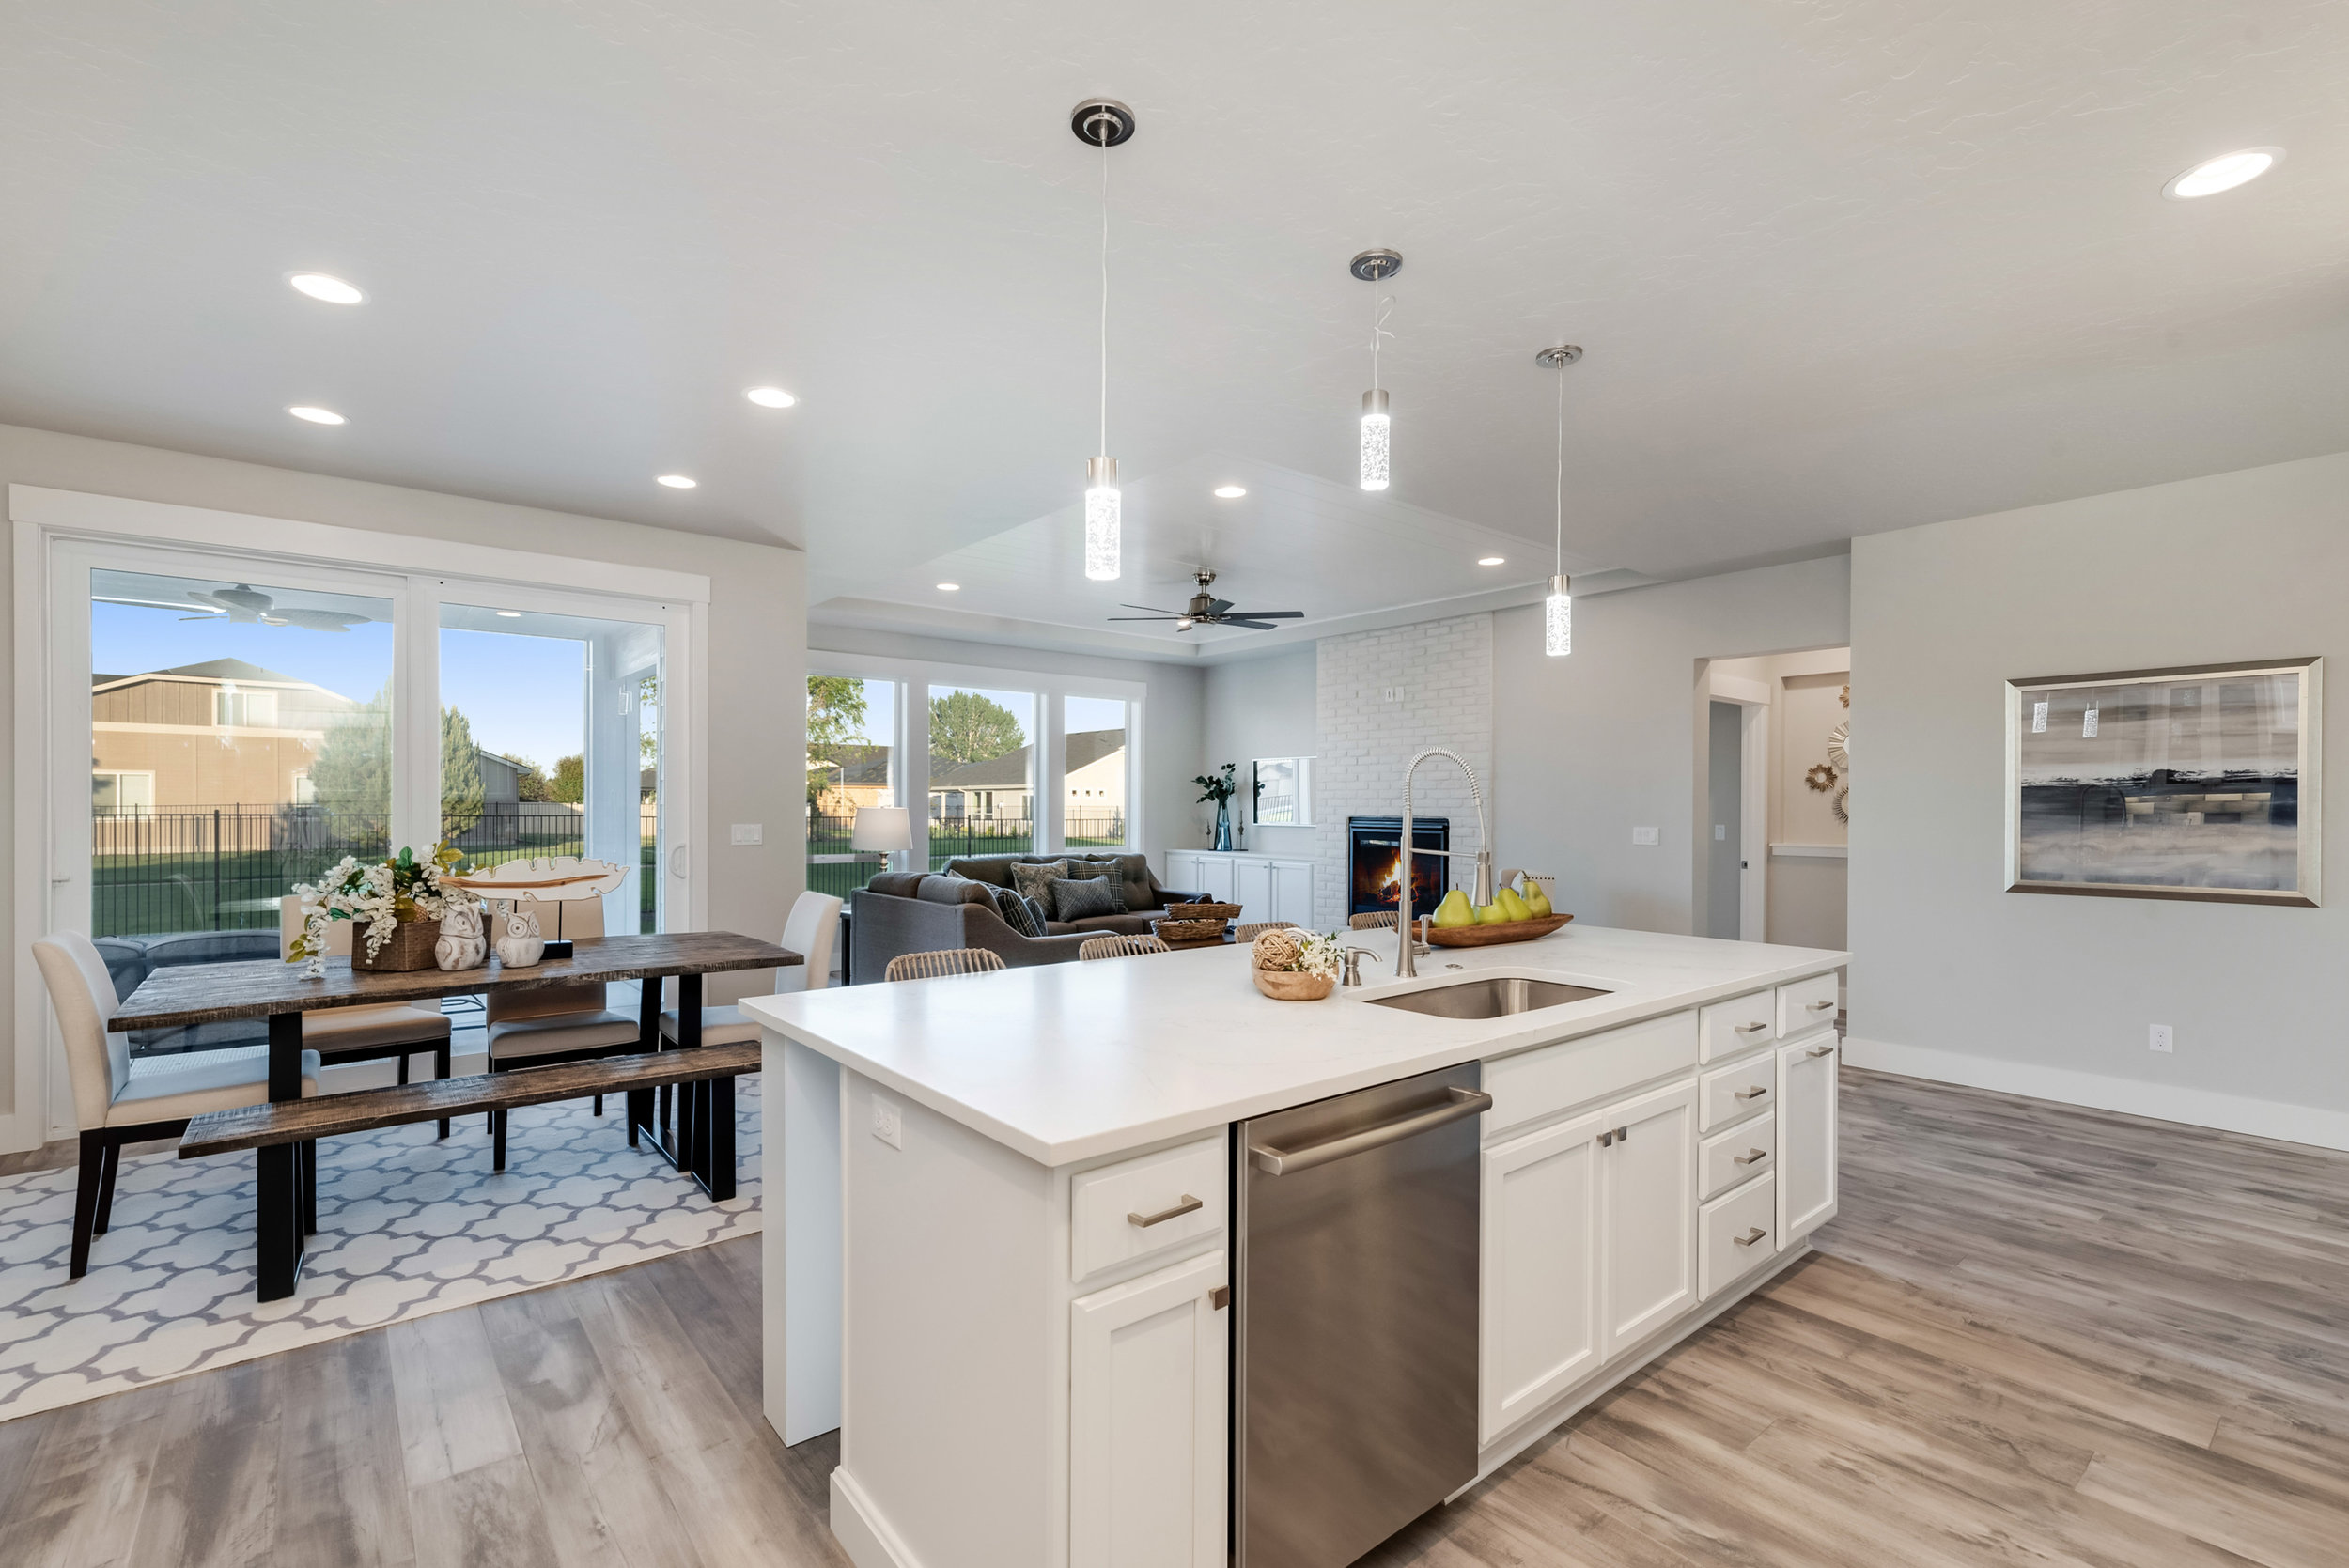 14-Kitchen and Dining.jpg